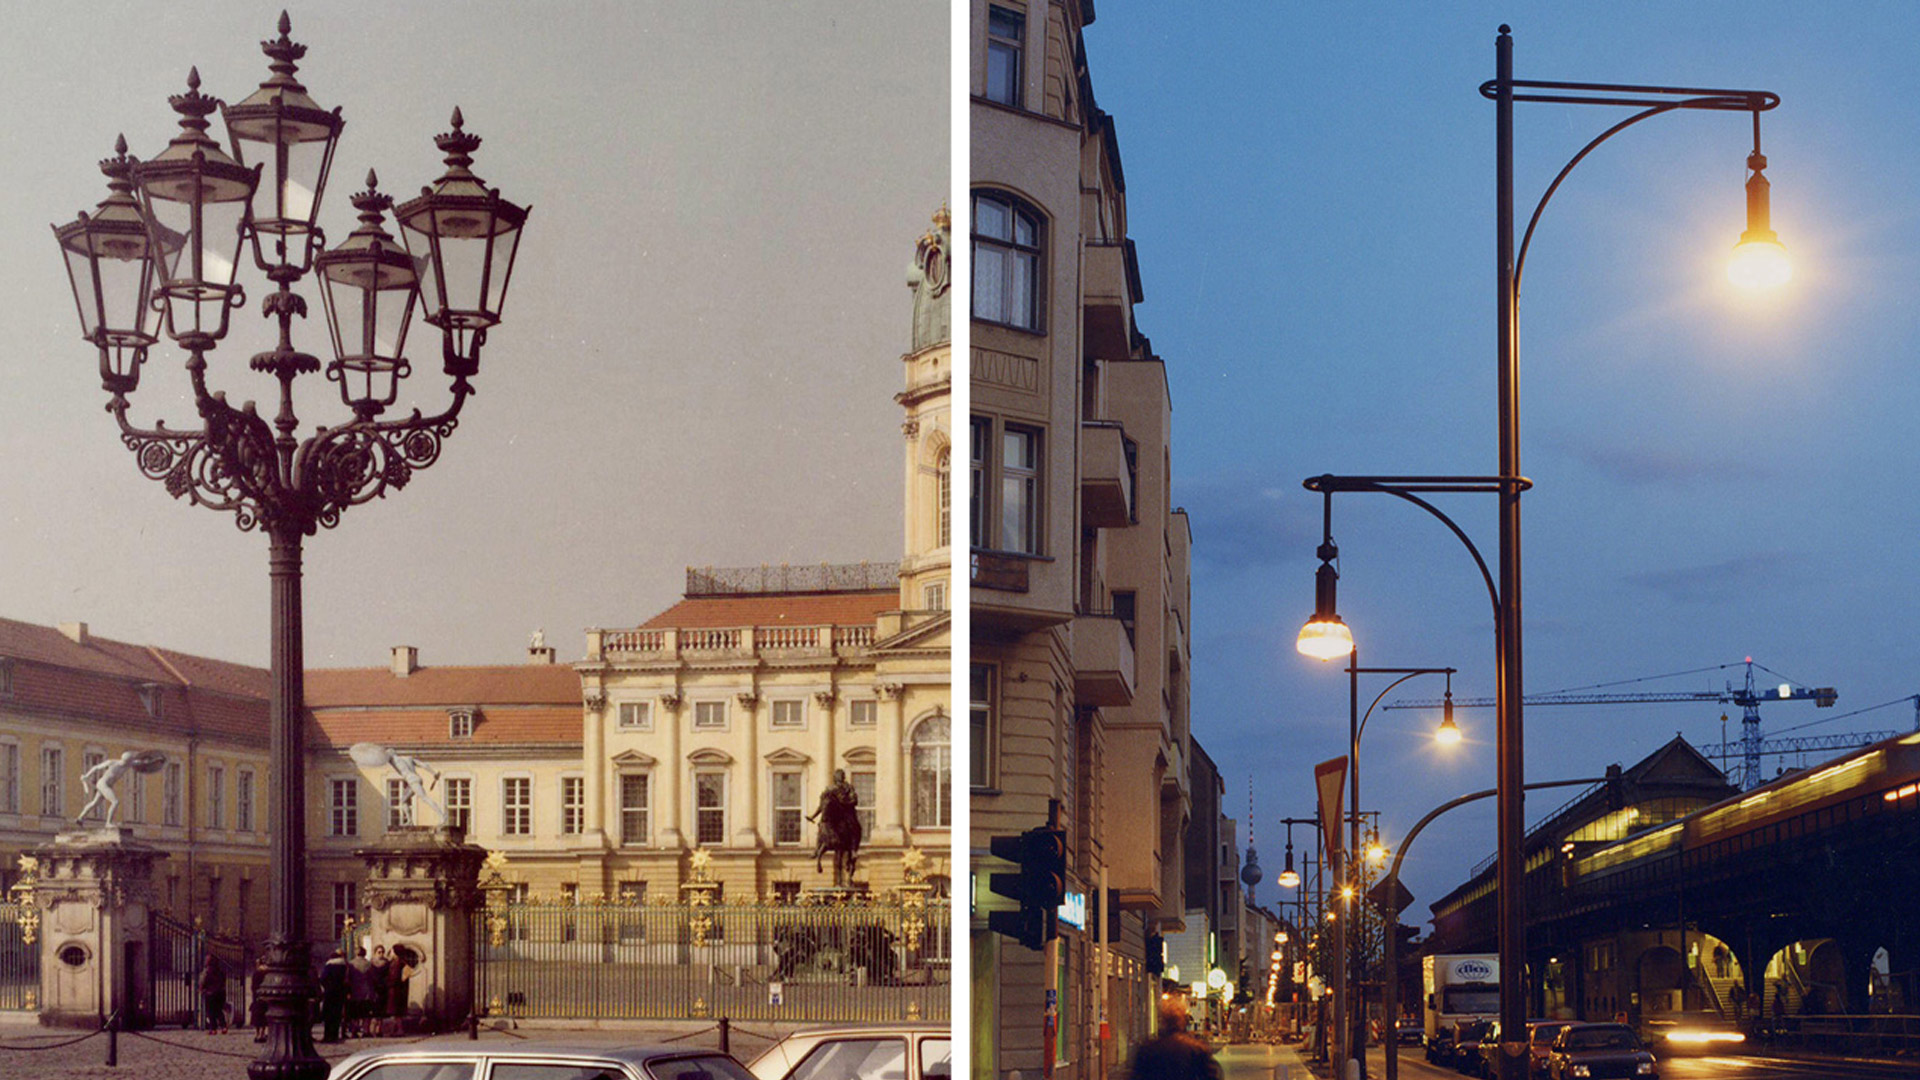 Two images of Berlin street lighting